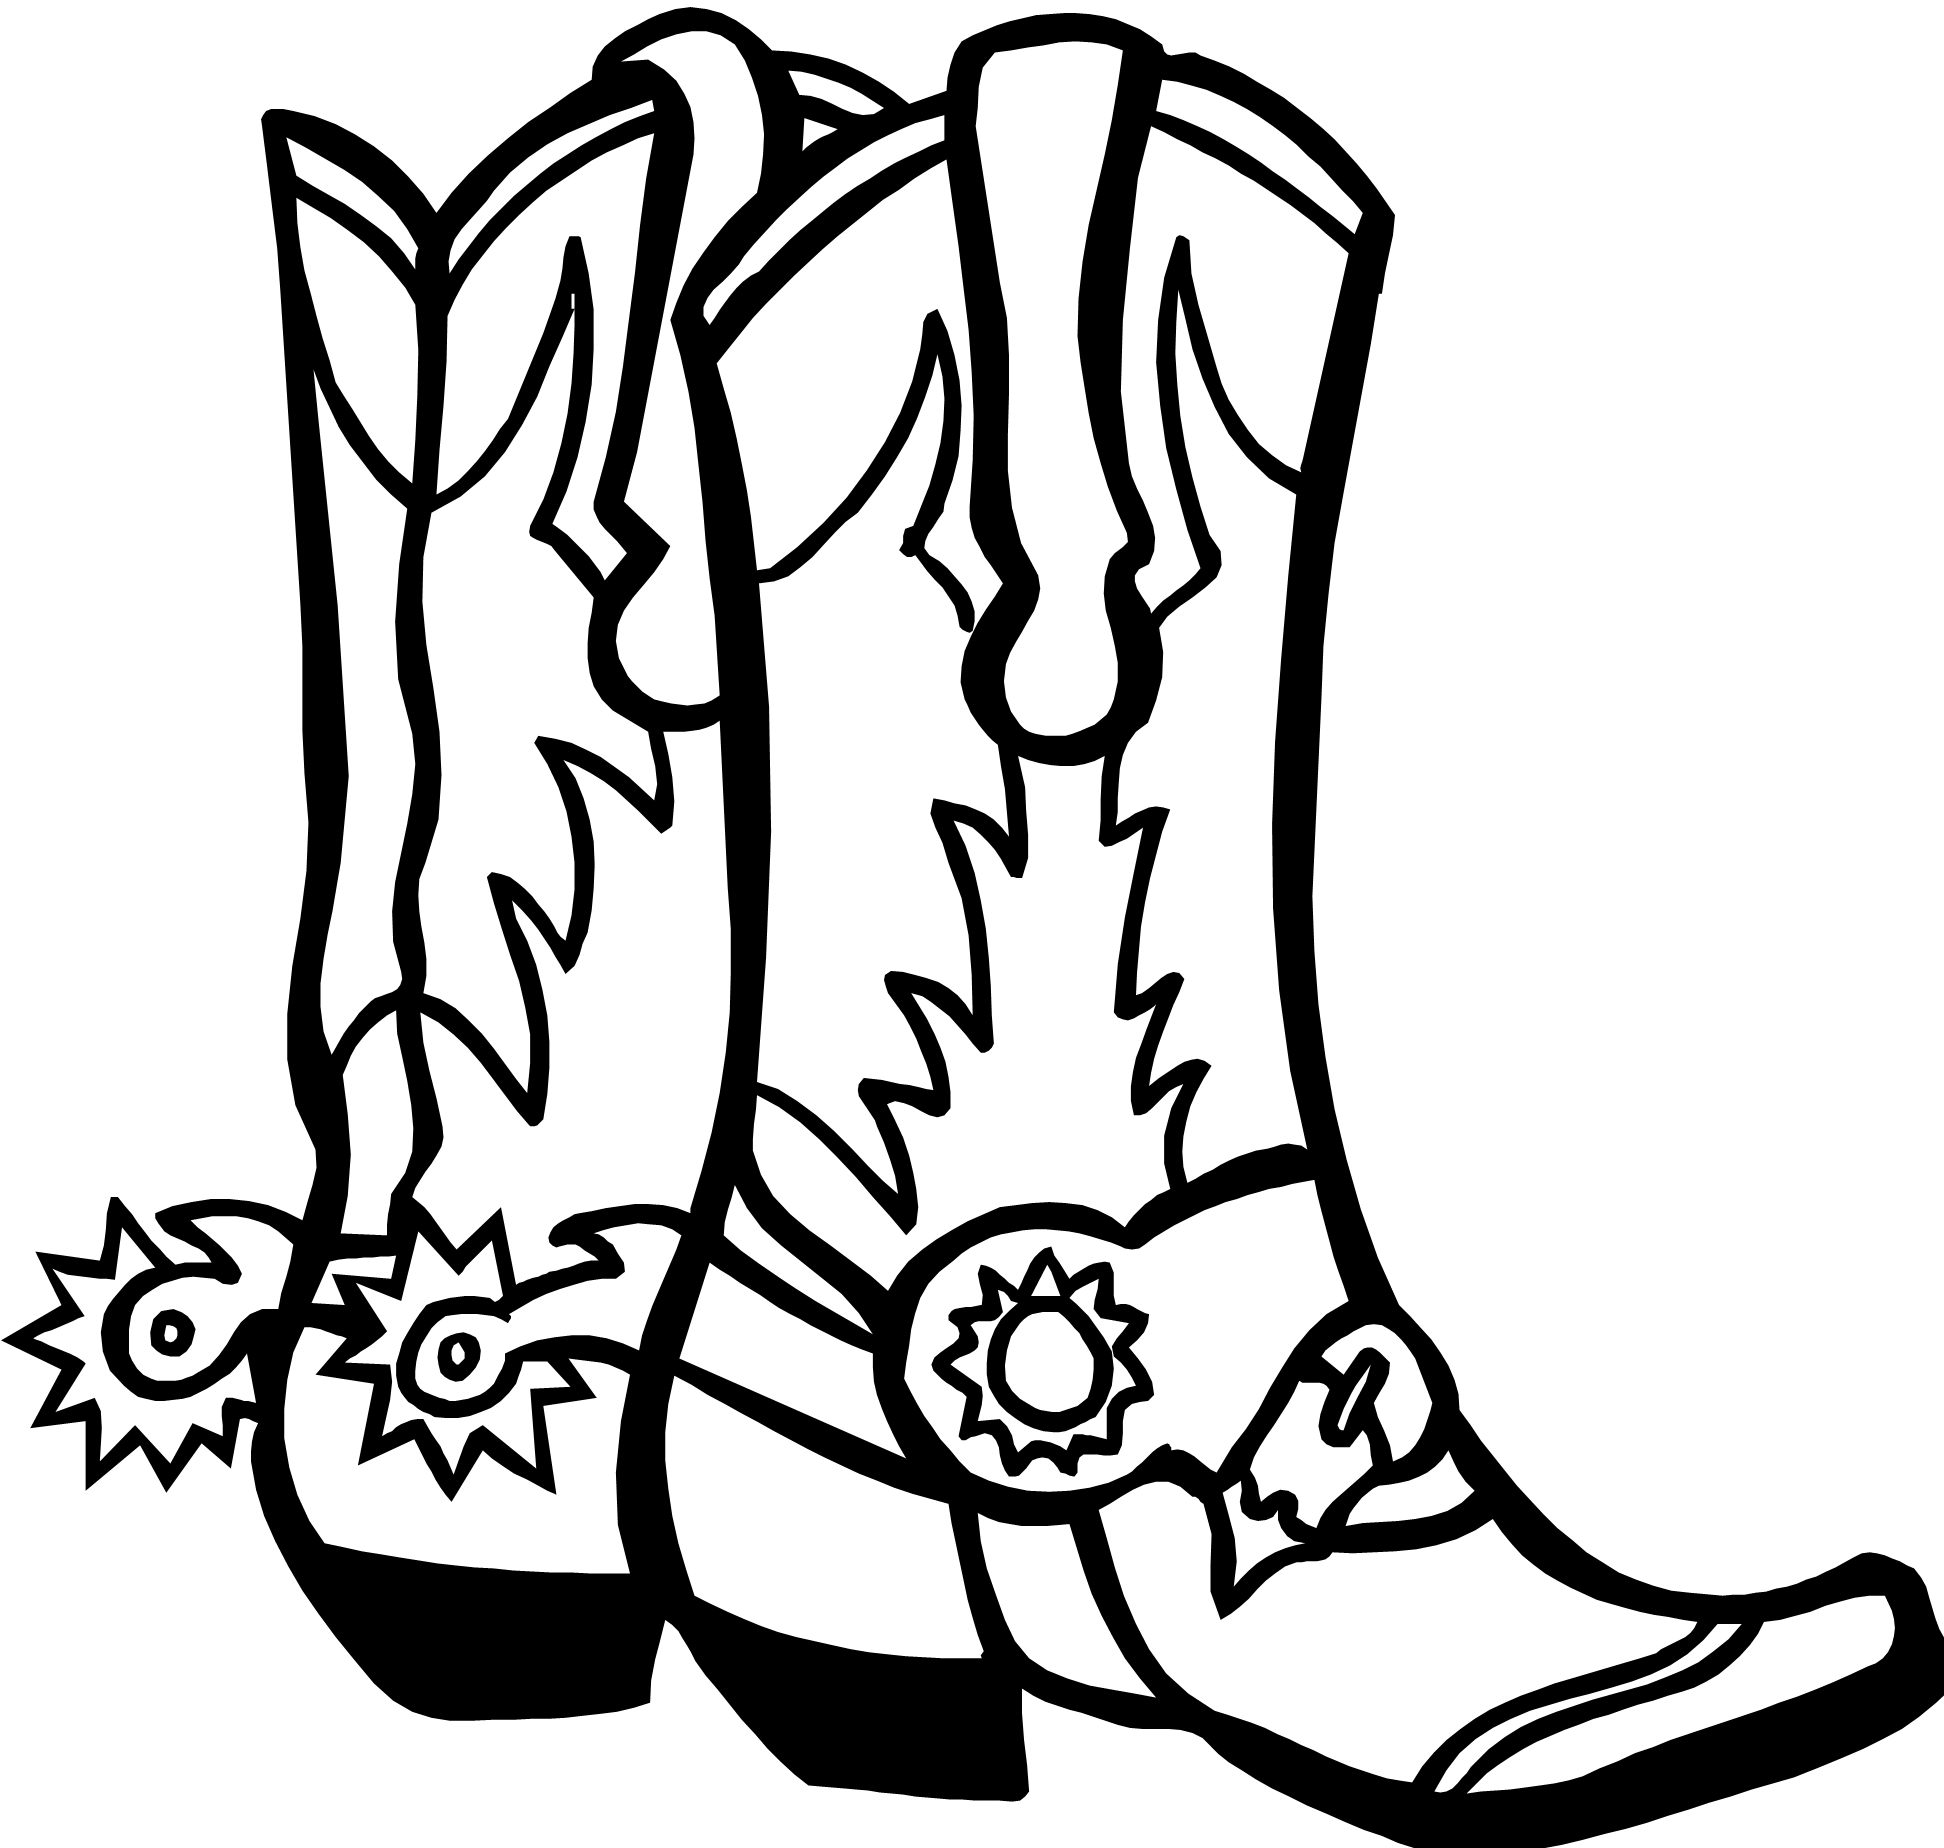 image download Cowboy boot fototo me. Western black and white clipart